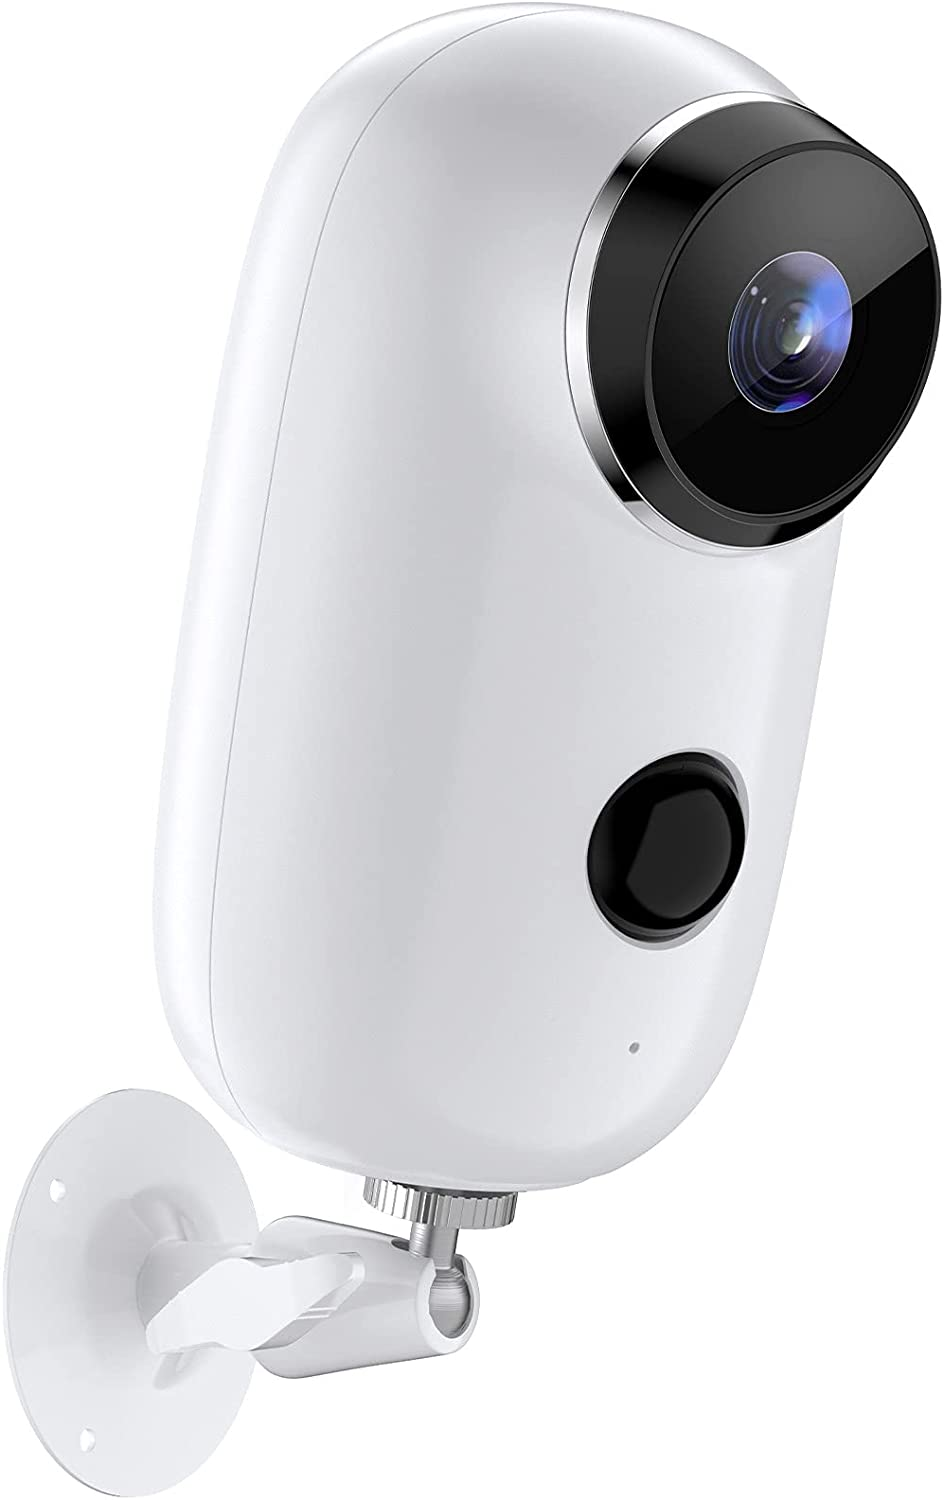 【2021Updated】 Security Cameras Indoor/Outdoor Wireless,With Rechargeable Battery Powered Wifi Camera,Upgraded Night Vision Home Security Camera,2-Way Audio and SD Storage,Advanced AI Person-Detection